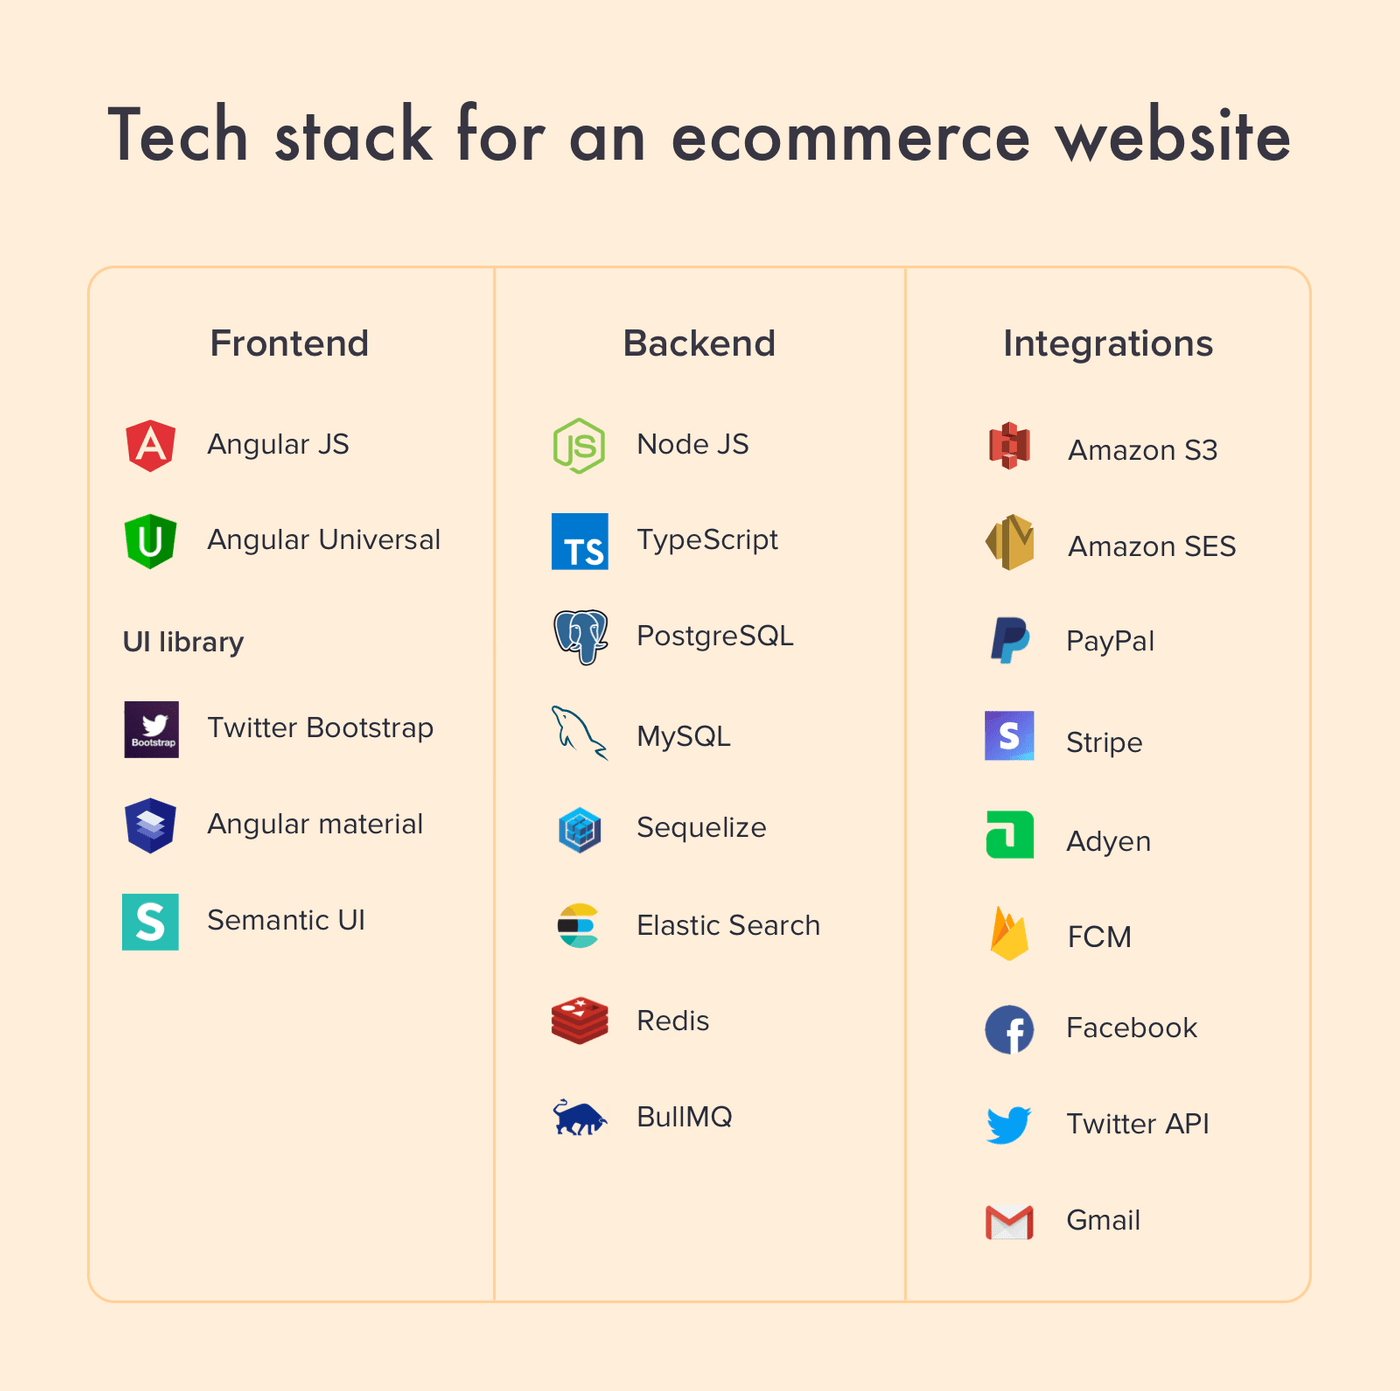 Tech stack for building an ecommerce website